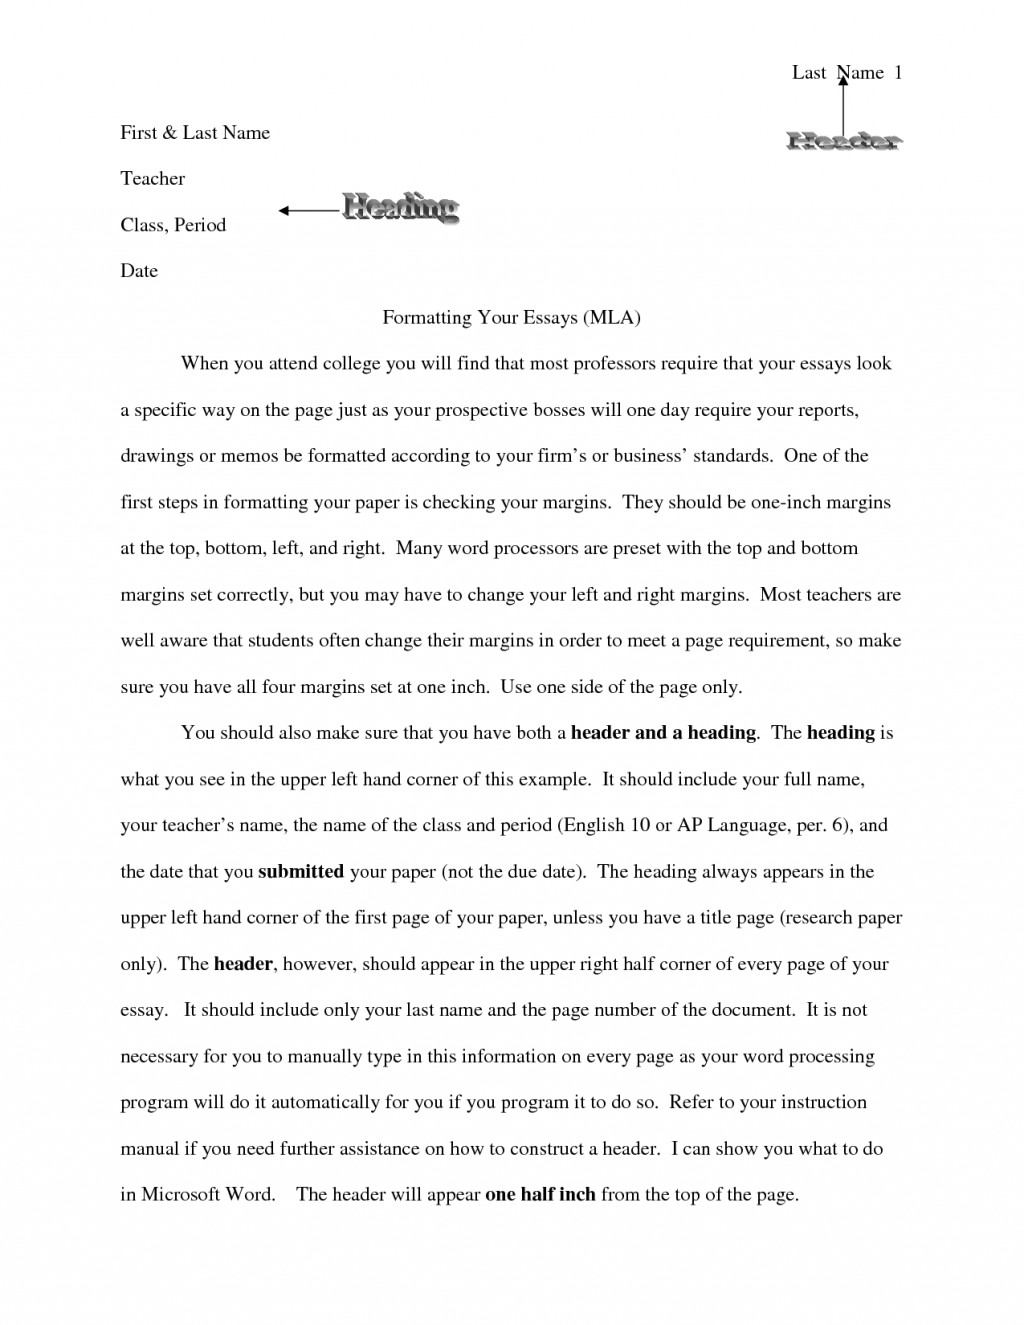 003 Nnftftofsn Essay Example College Incredible Heading Admissions Format Application Papers Large